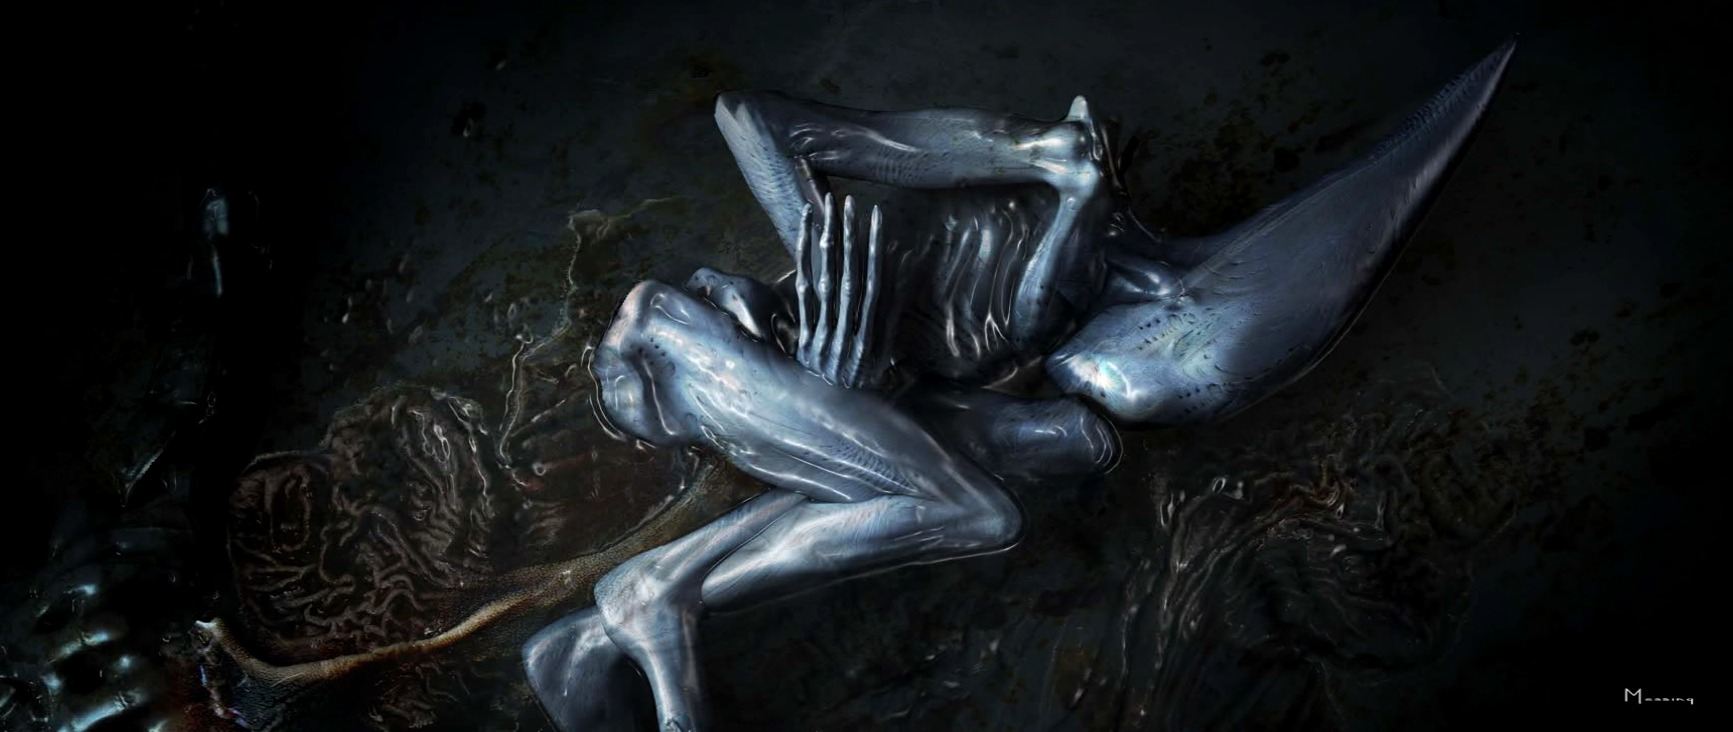 3d alien birth exposed pictures